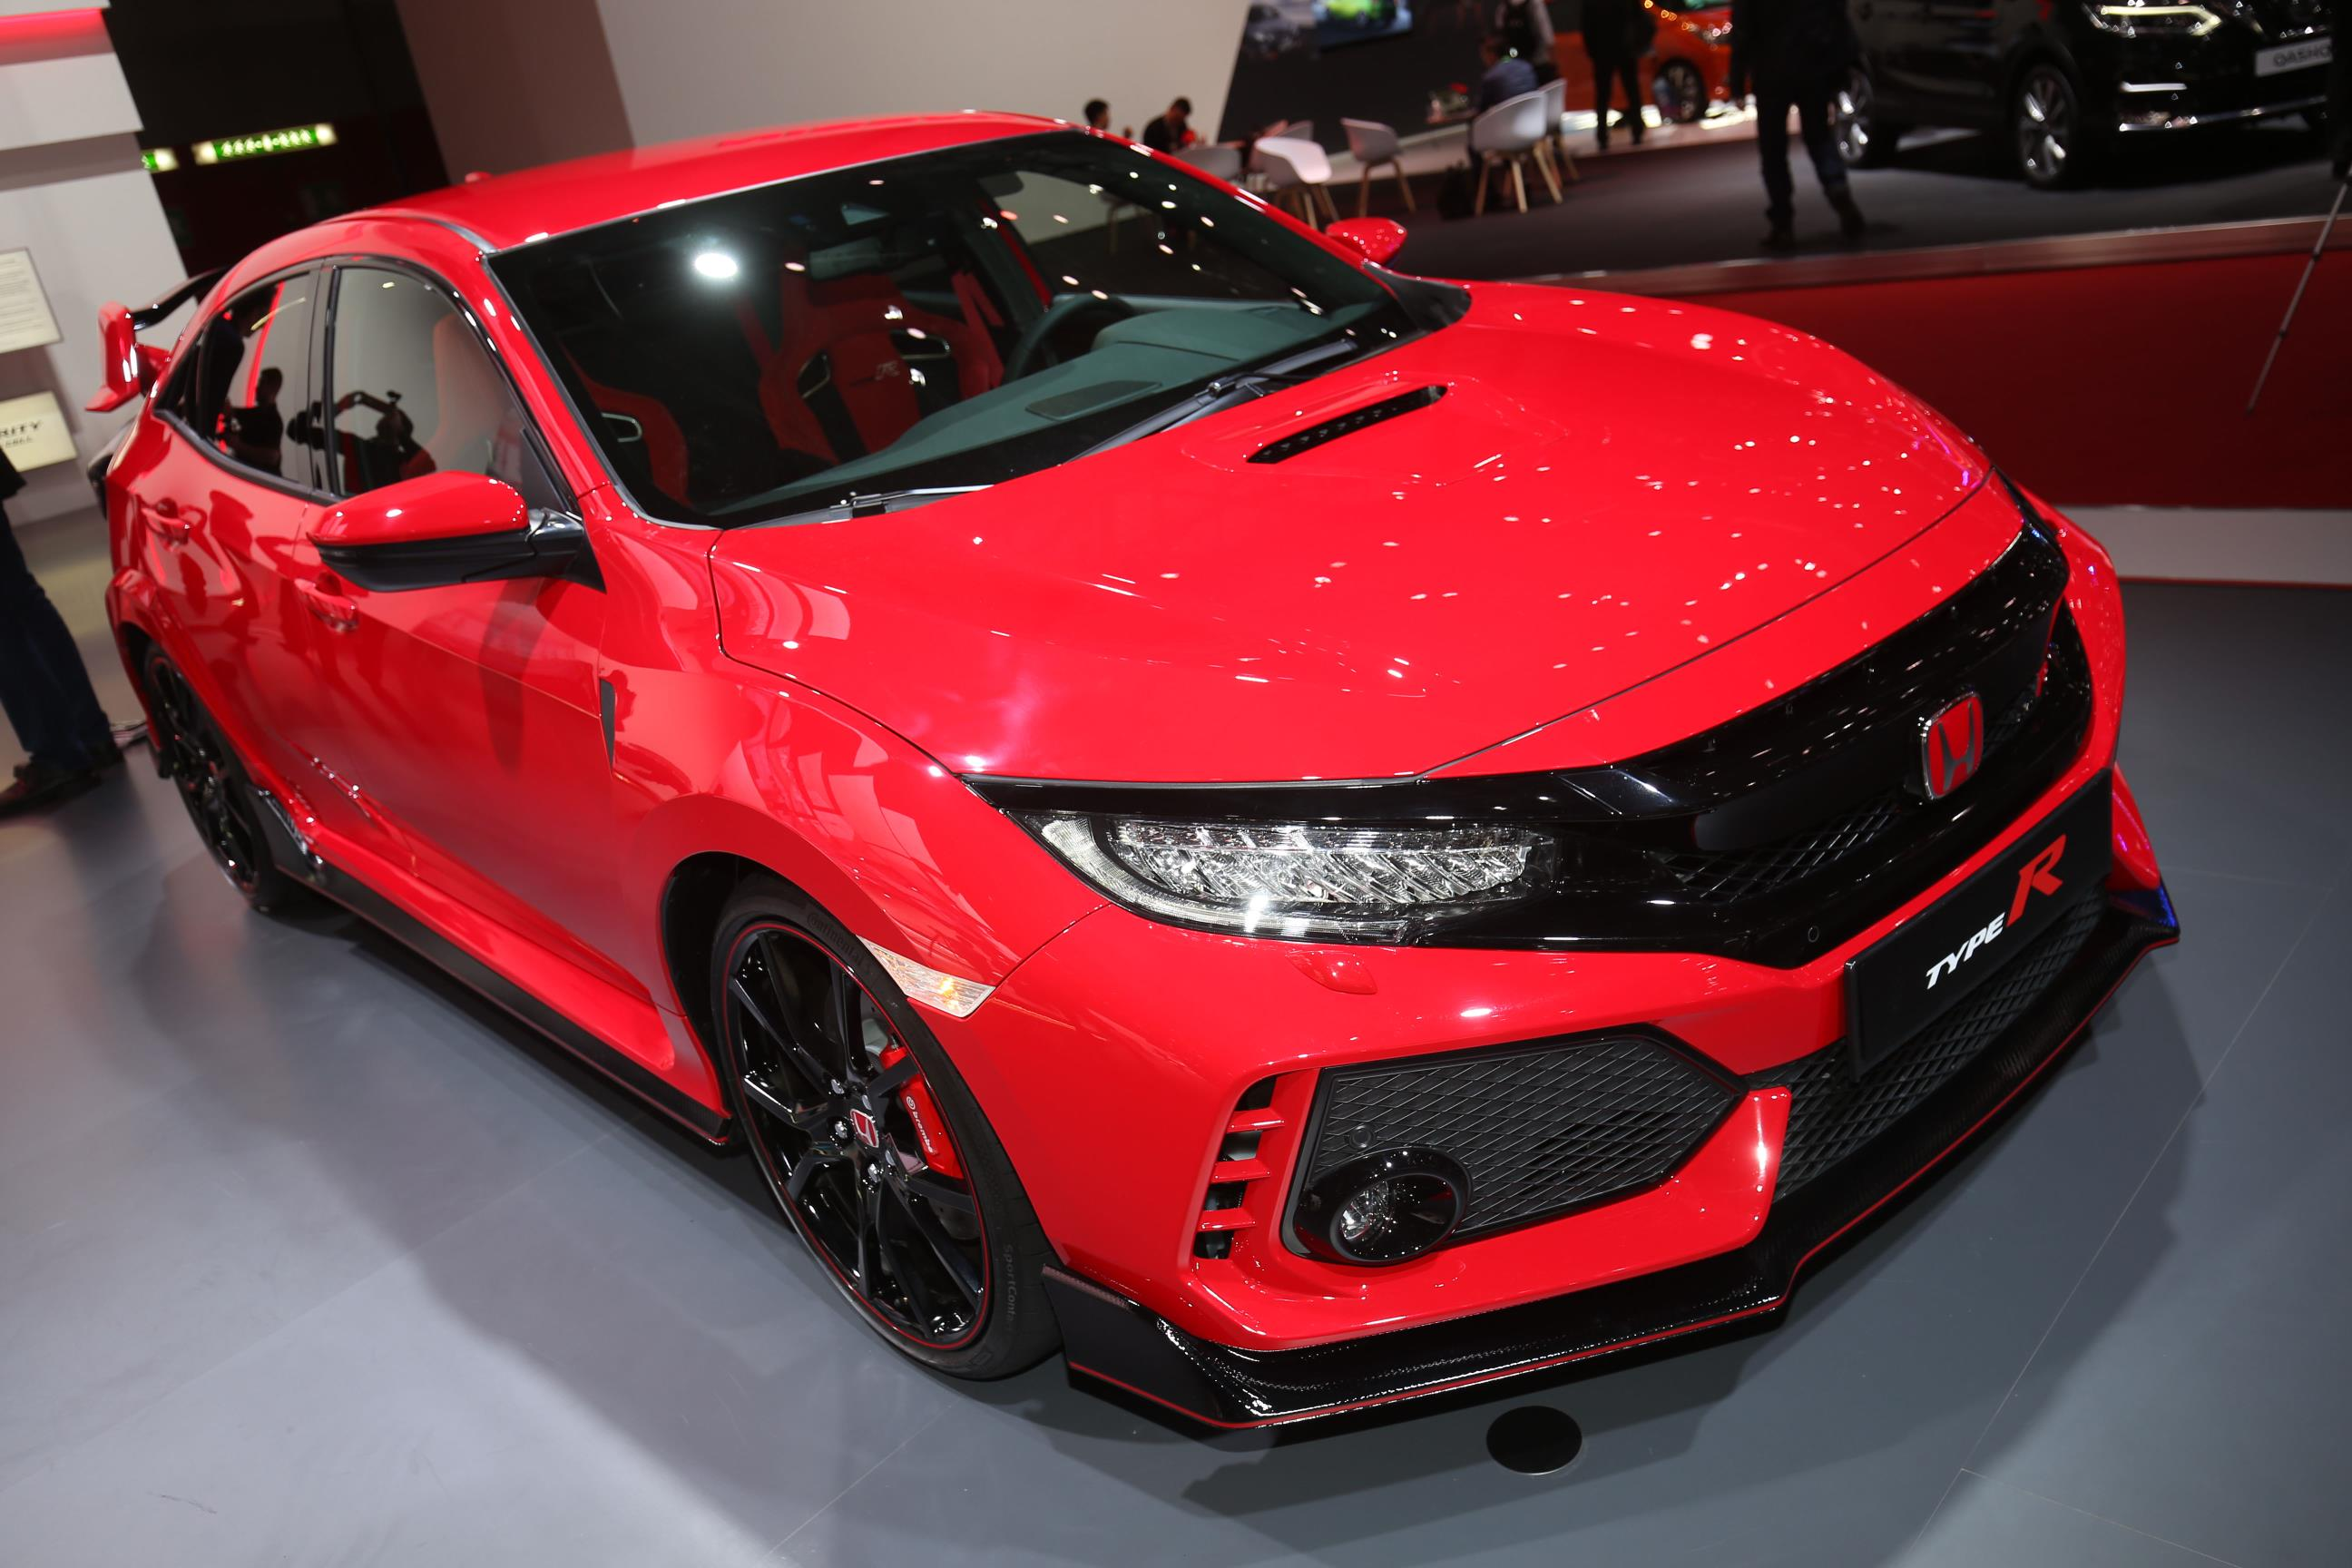 honda shows off 2018 civic type r in promo video exhaust note included autoevolution. Black Bedroom Furniture Sets. Home Design Ideas